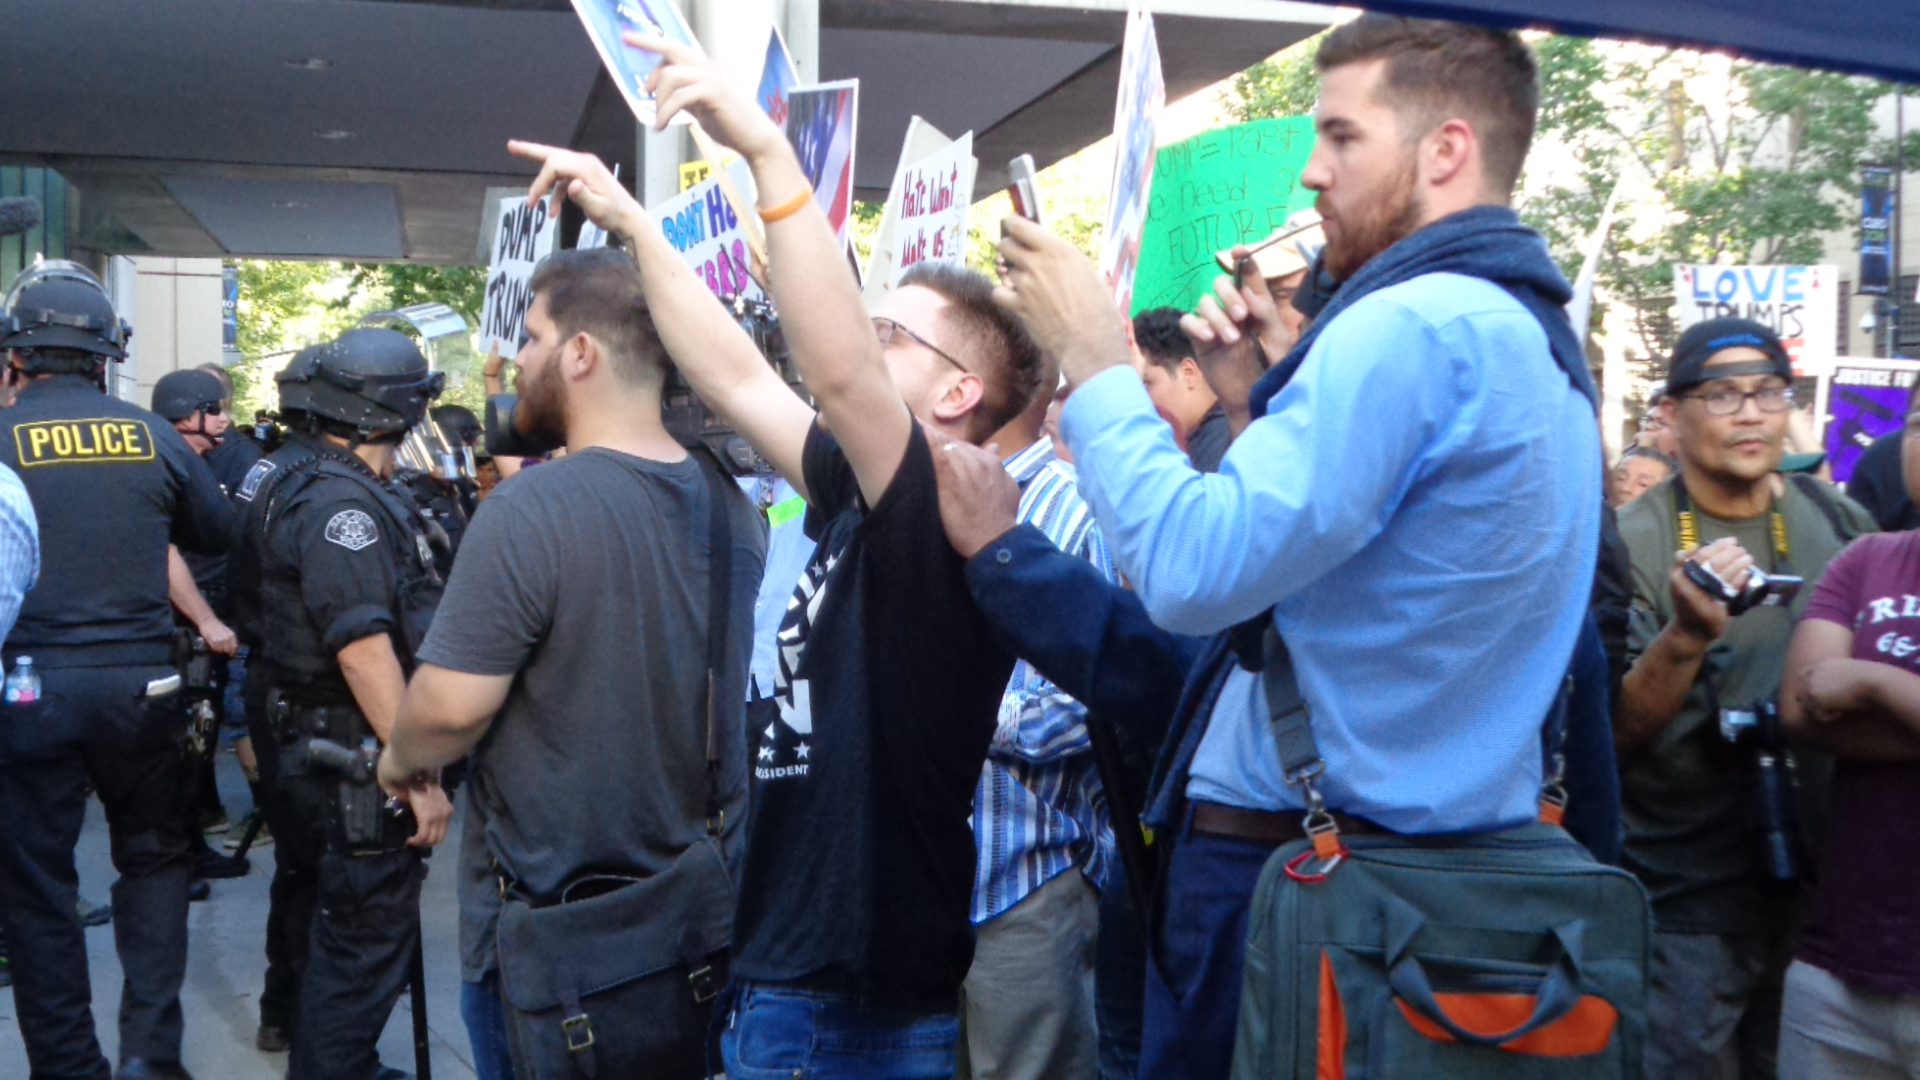 Why Do People Need Actors and Photographers for a Protest?